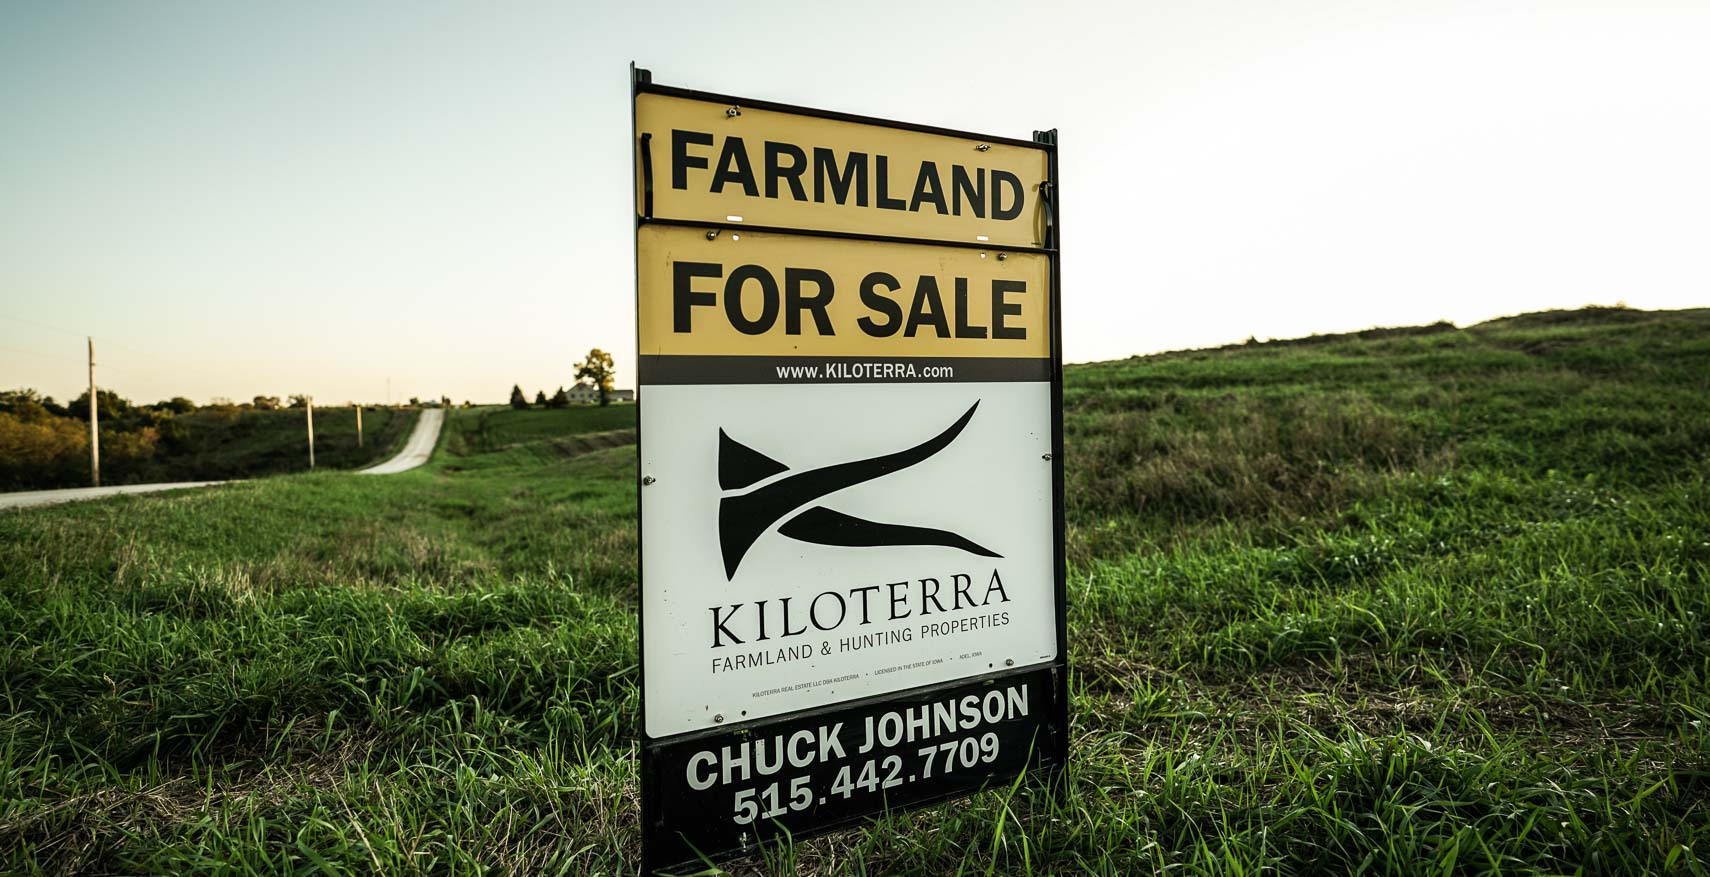 SELLING LAND 101 – PREPARING FOR THE SALE